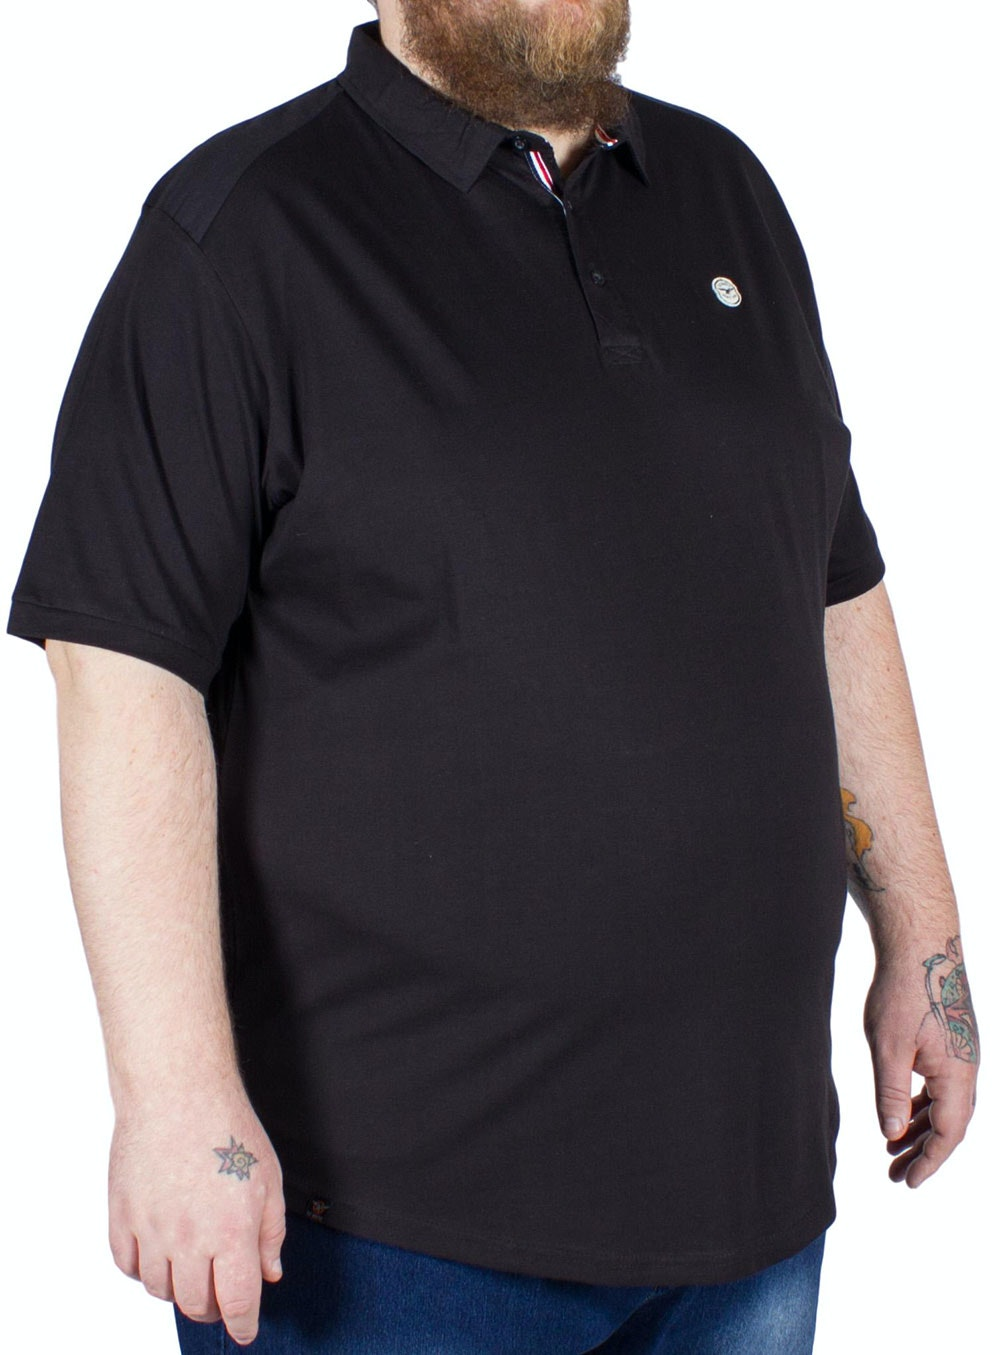 Le Breve Scavenger Polo Shirt Black